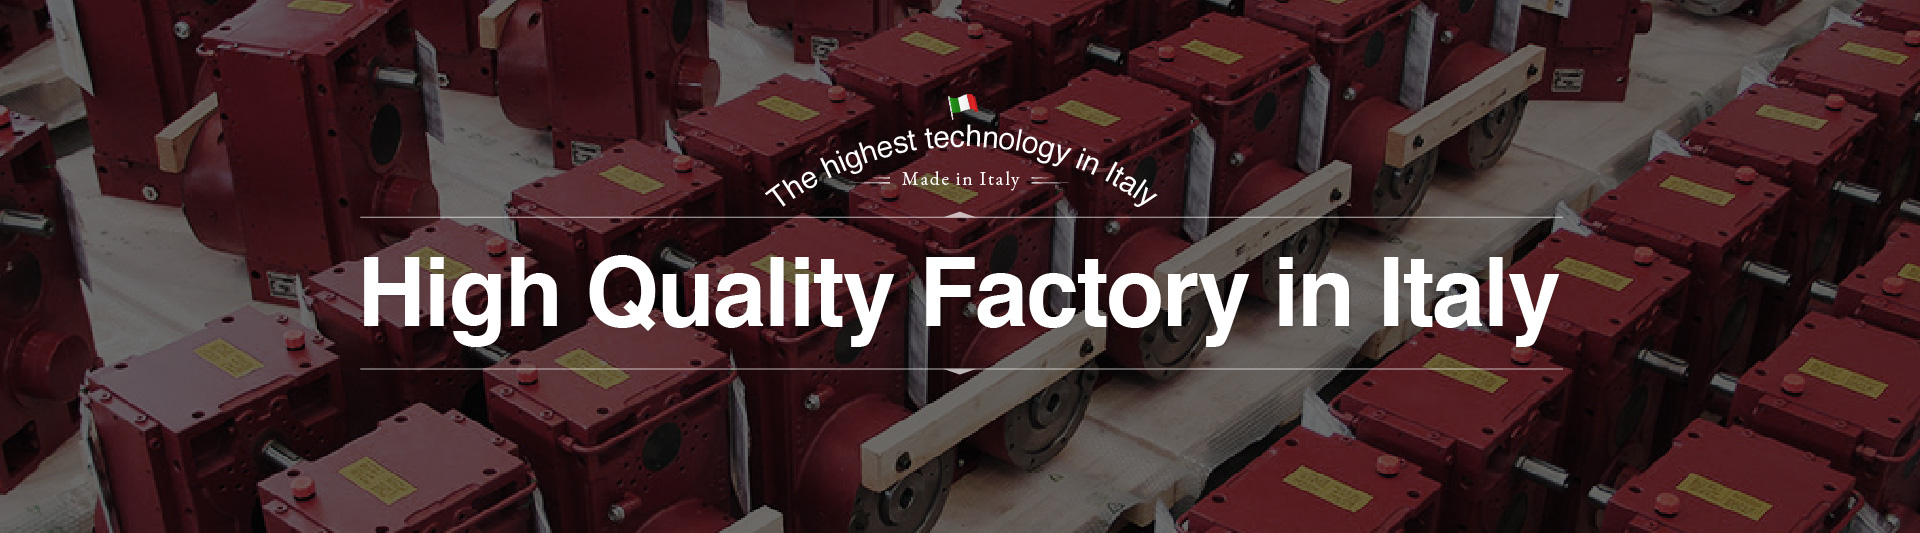 High Quality Factory in Italy